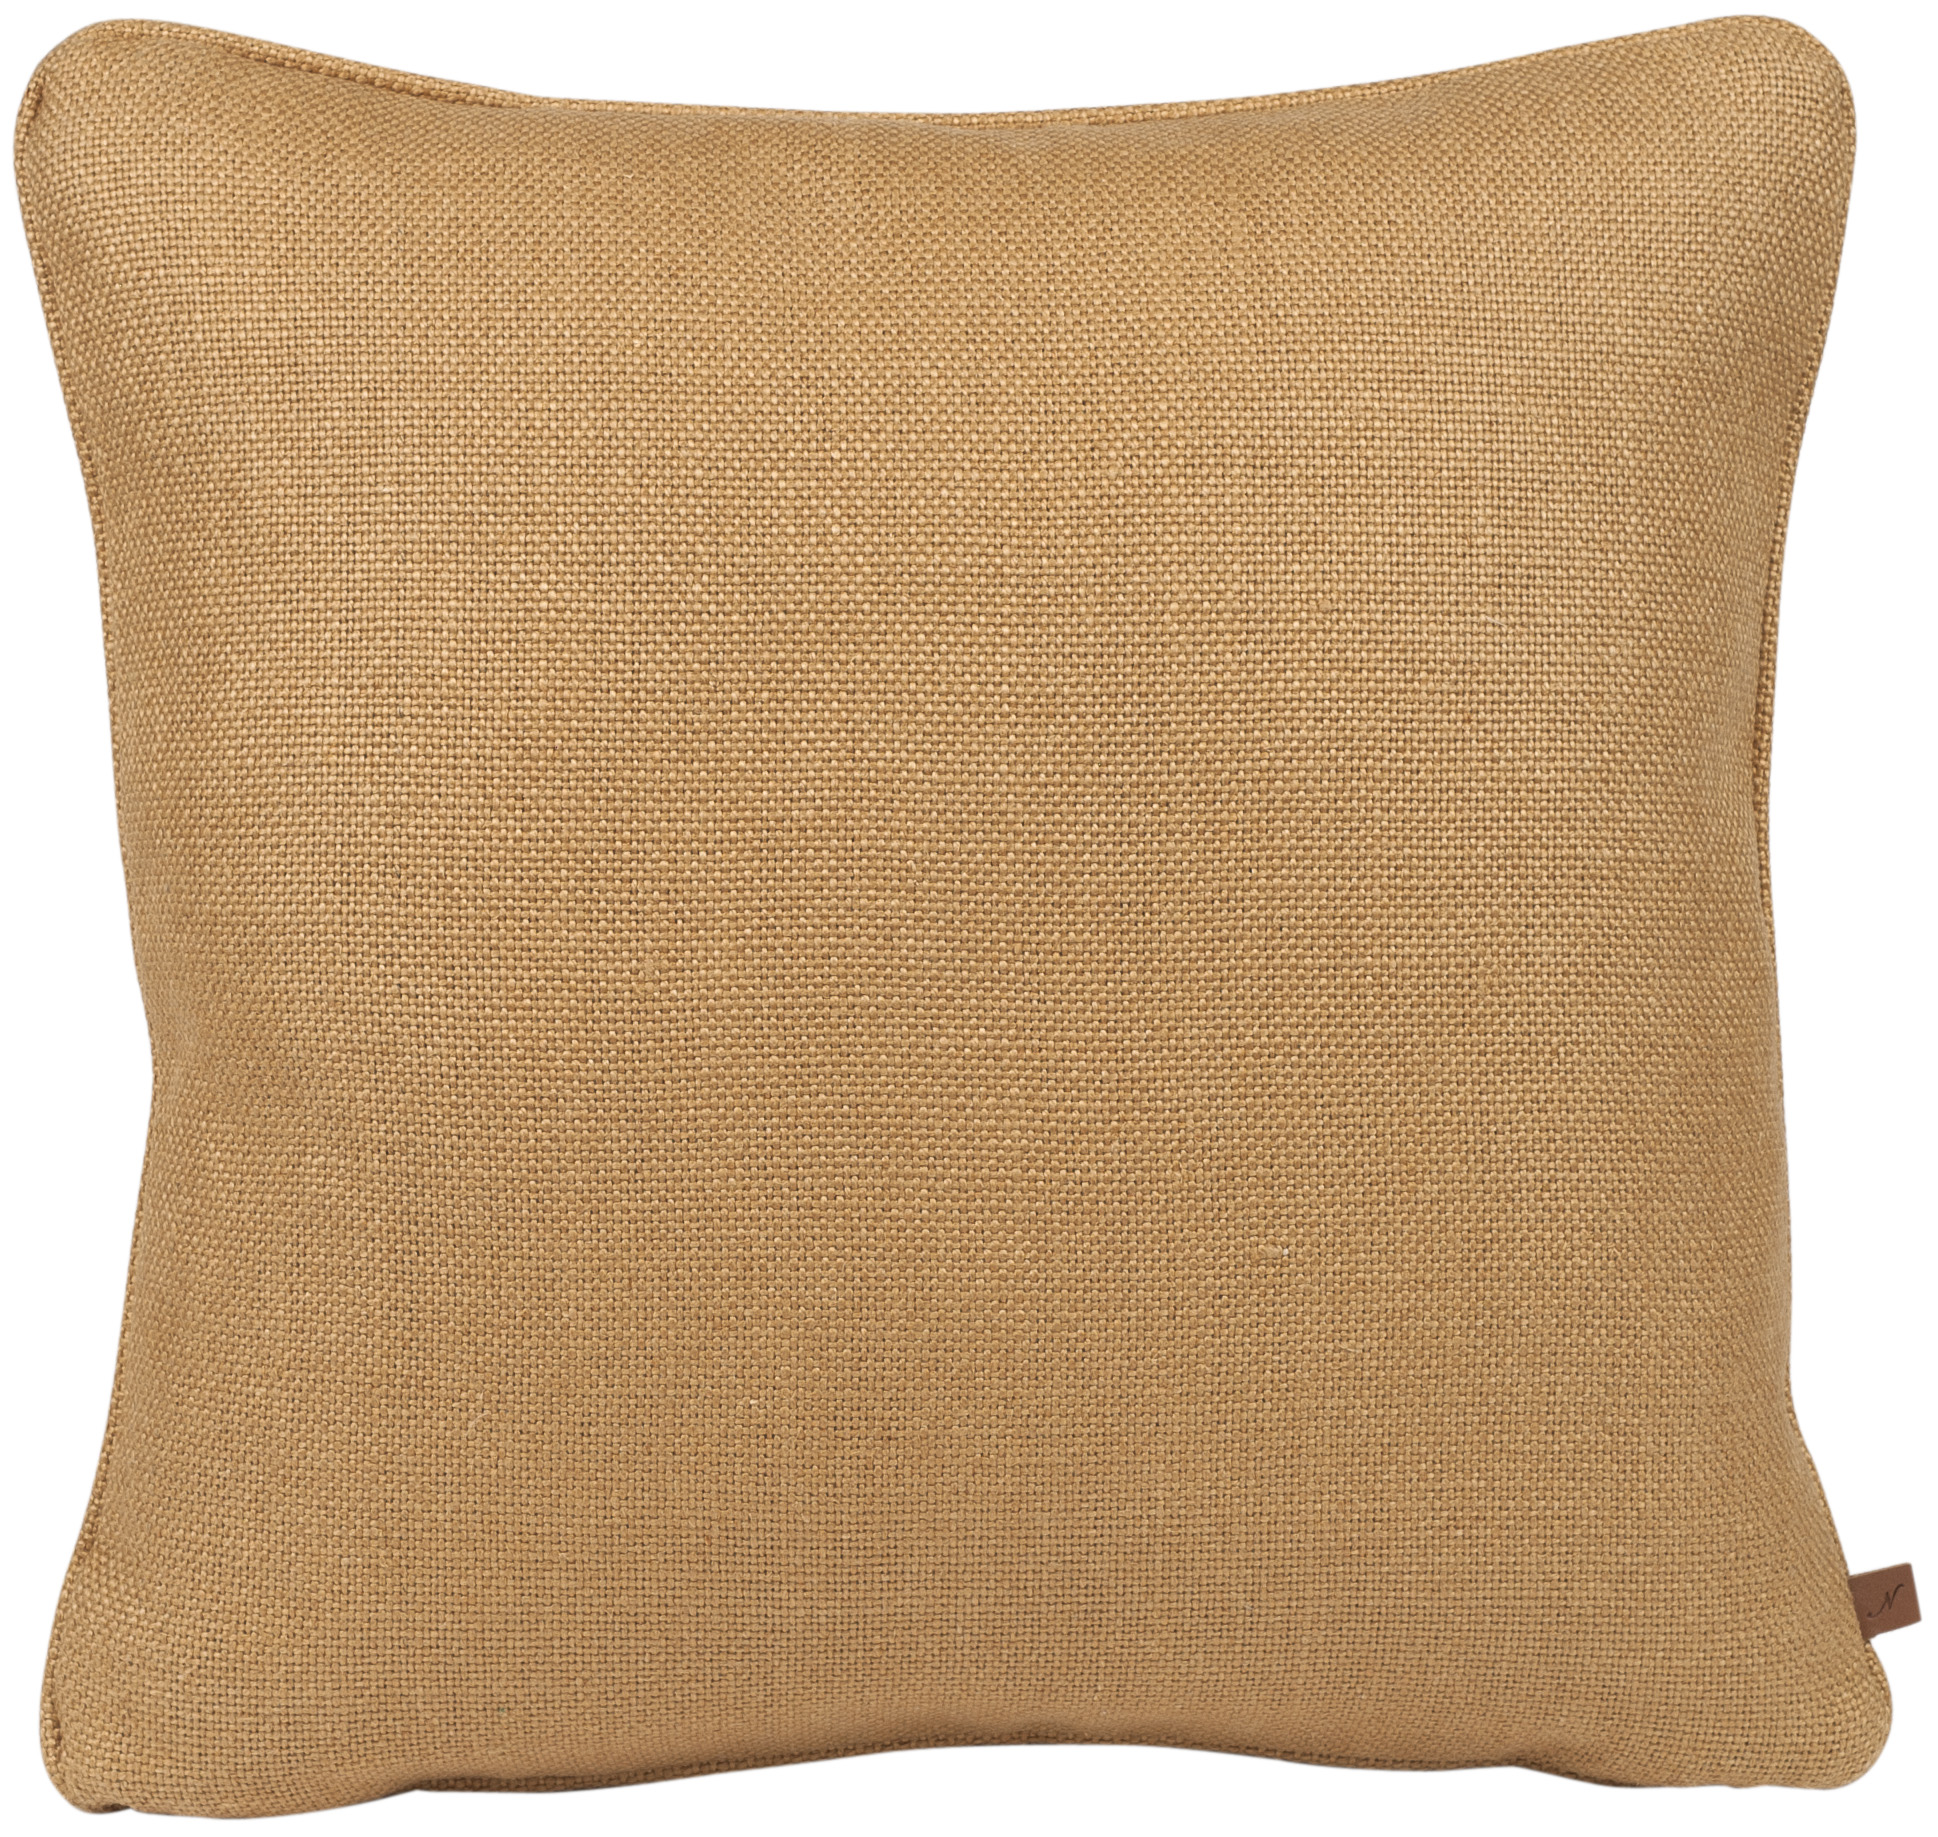 Florence Cushion 45x45cm, Hugo Mustard